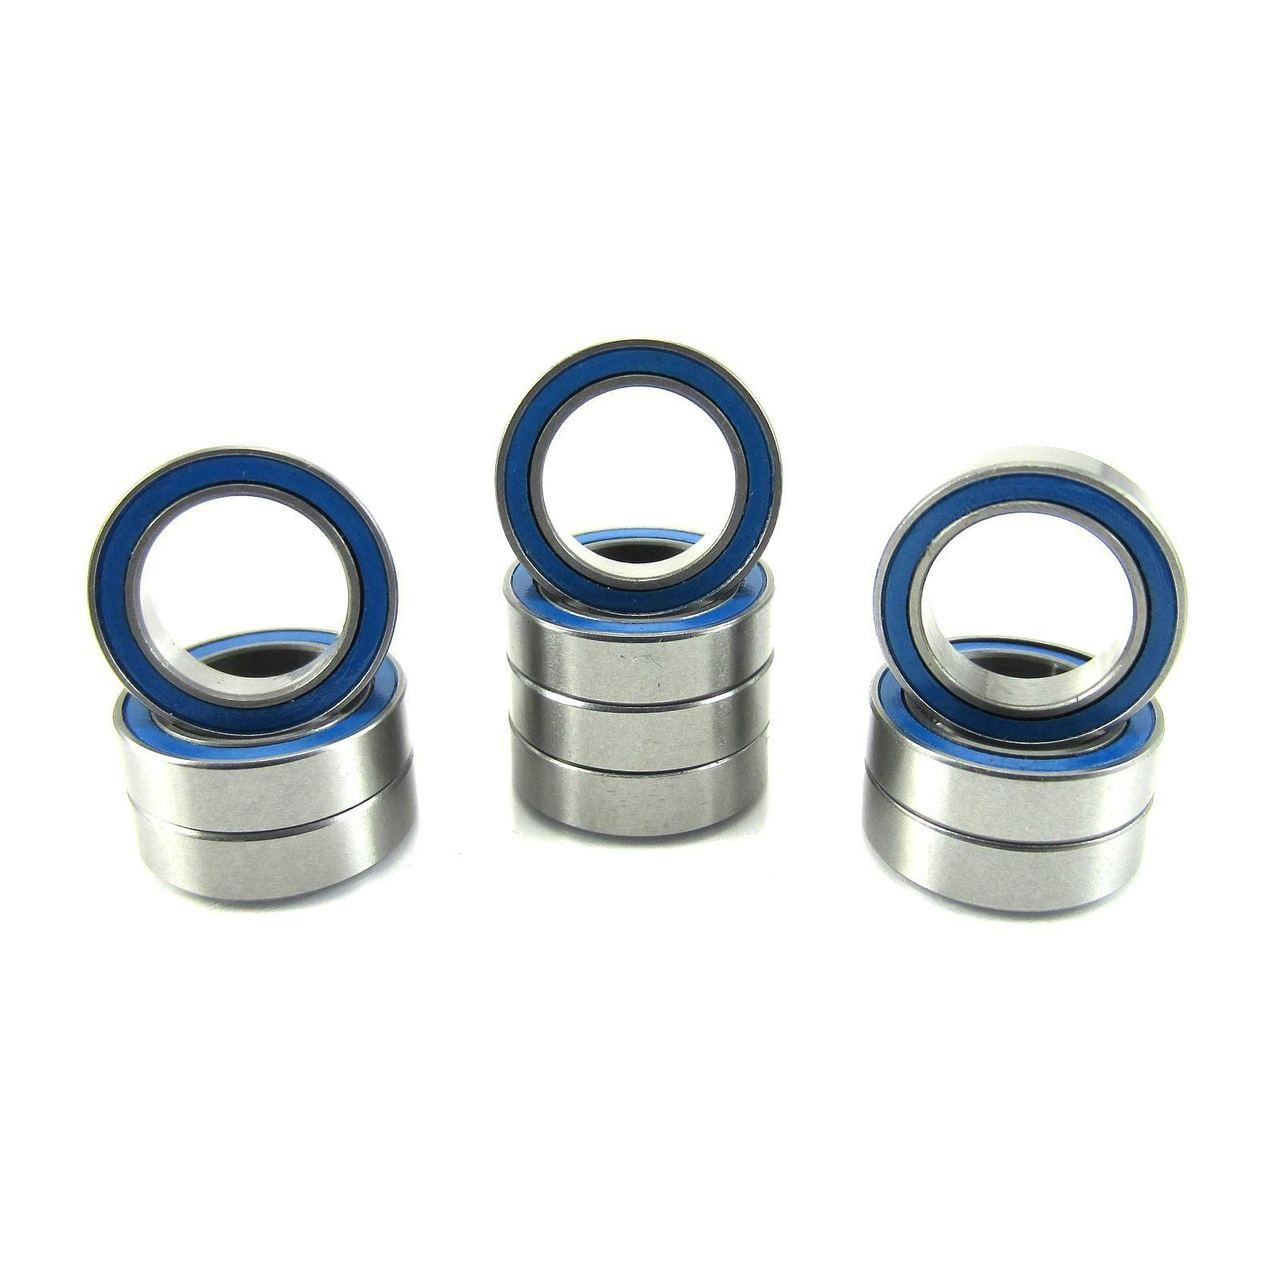 TRB RC 10x15x4mm Precision Ball Bearings ABEC 3 Rubber Sealed BLU (10)